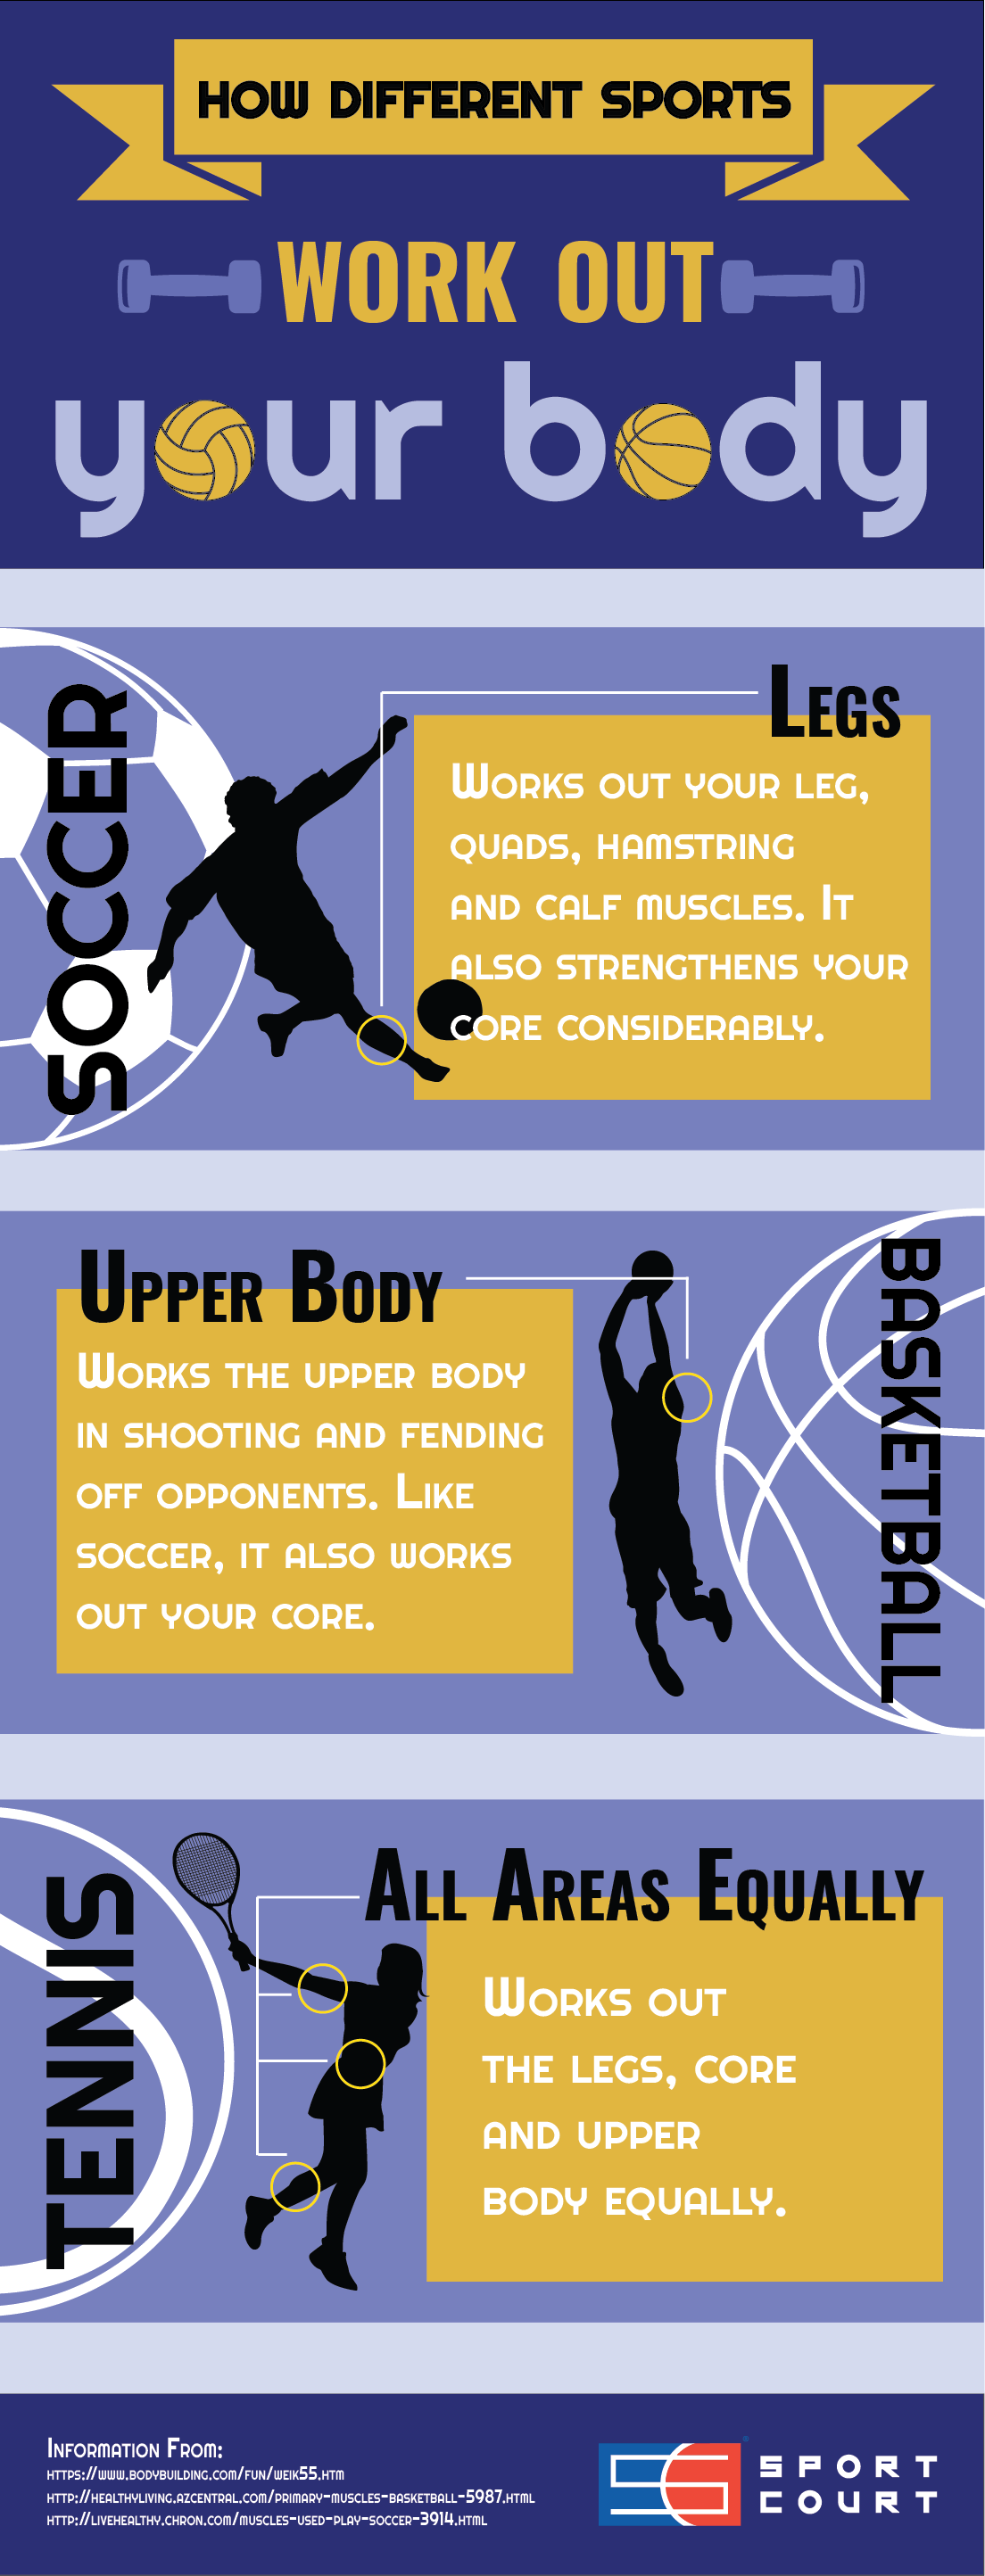 How Different Sports Work Out Your Body